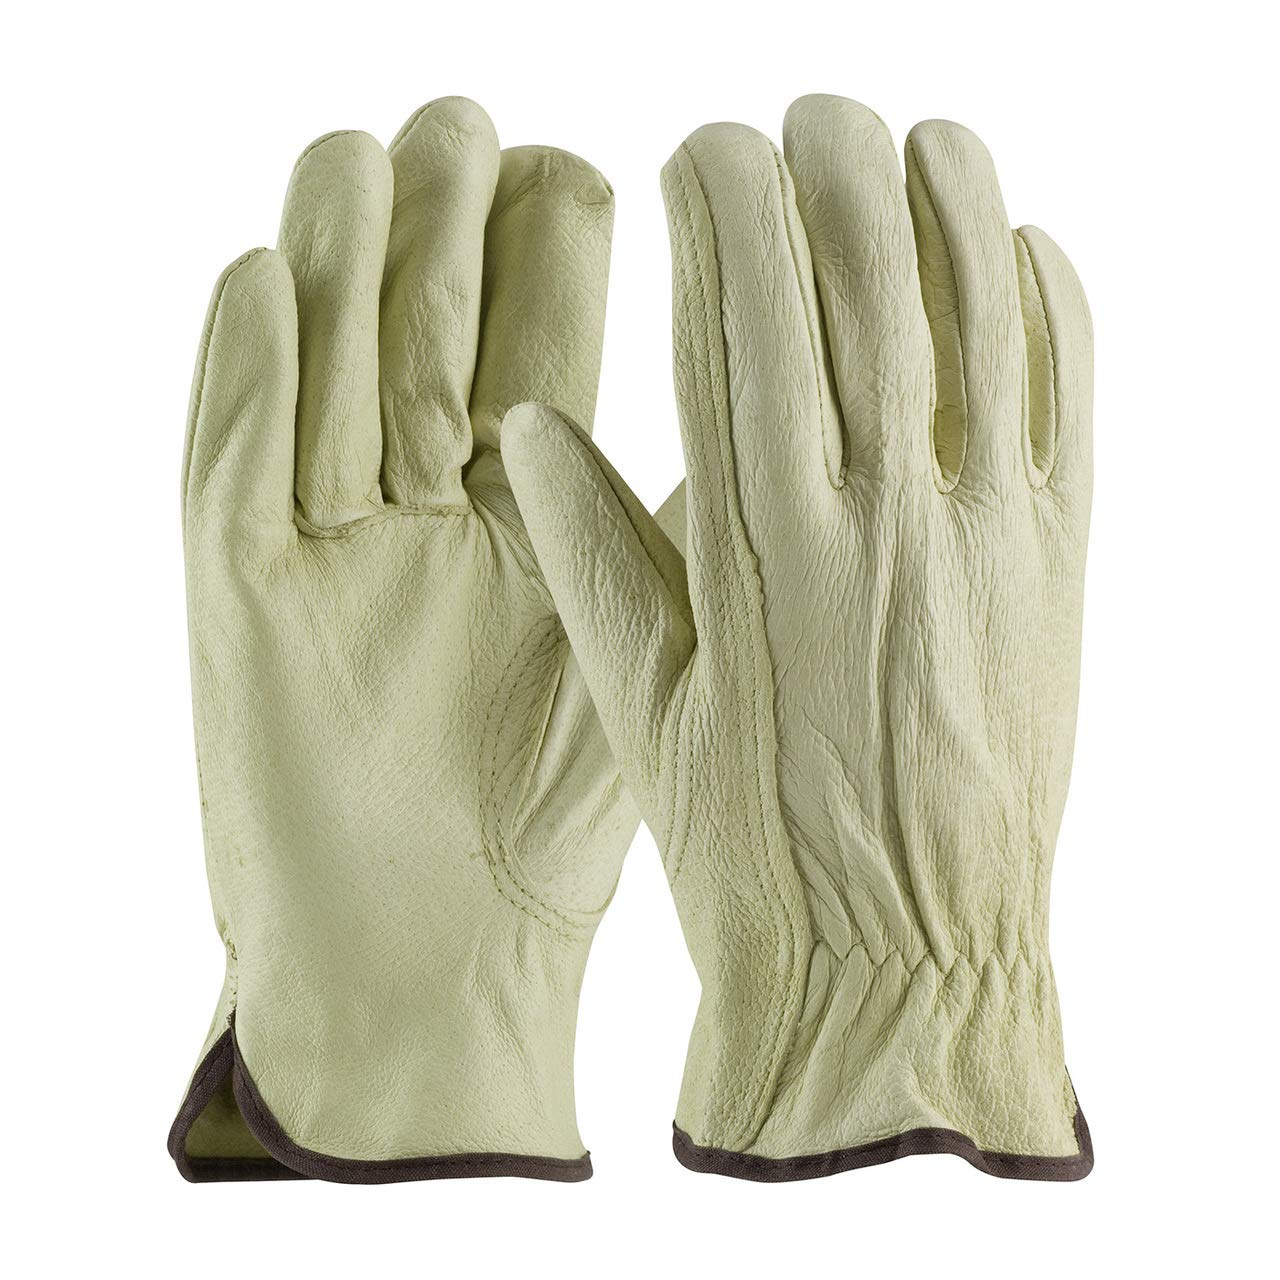 PIP 70-360 Grain Pigskin Leather Drivers Gloves Keystone Thumb (L-24 Pack) by seattle (Image #1)